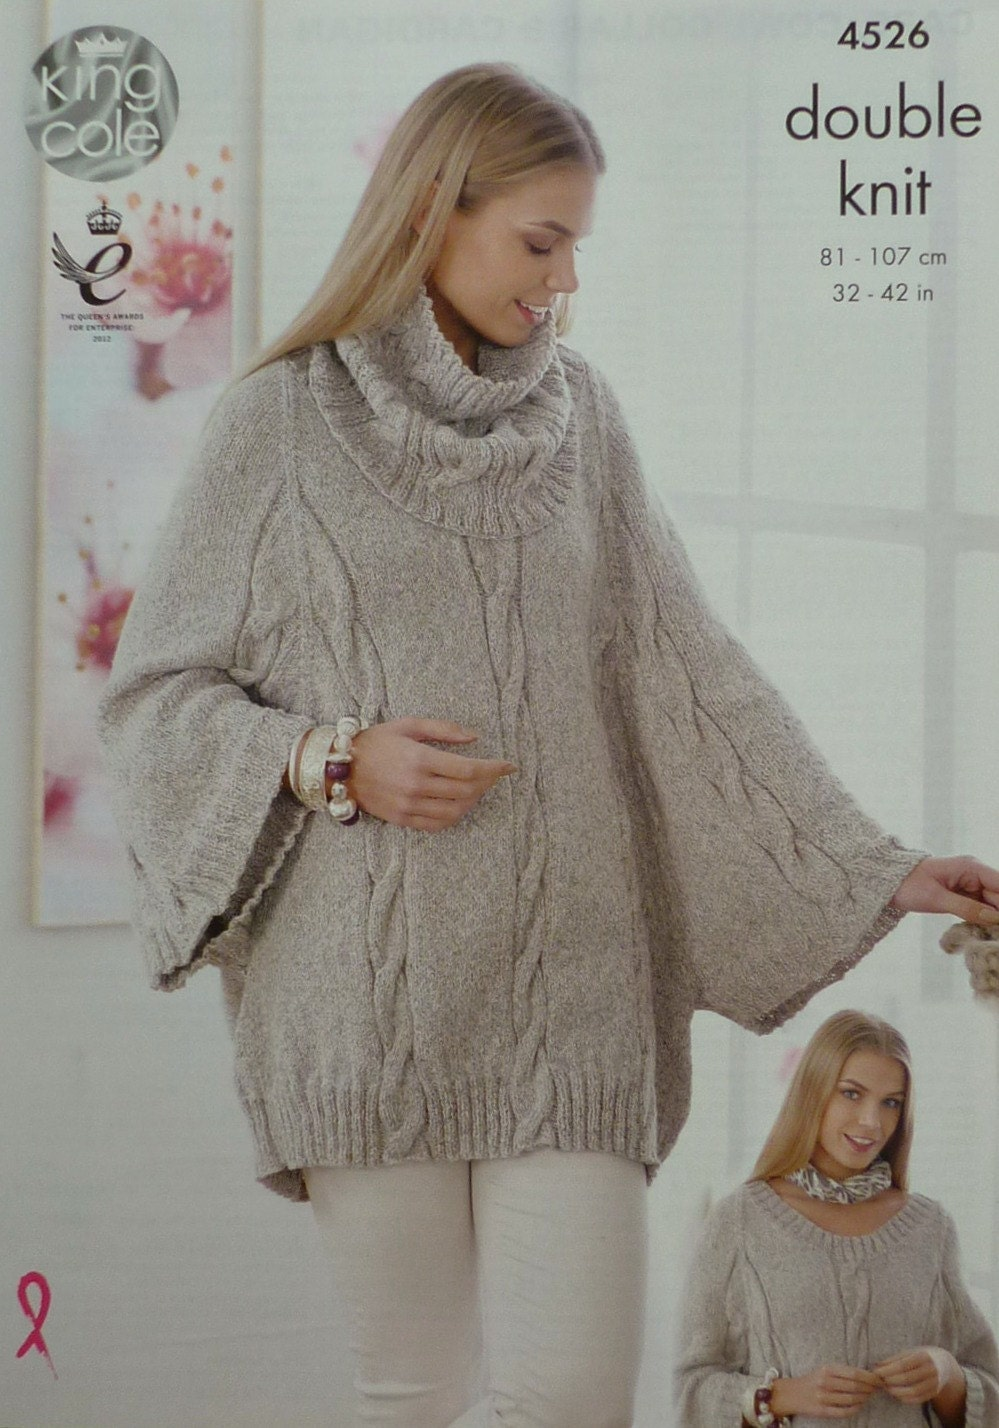 King Cole Poncho Knitting Pattern : Womens Knitting Pattern K4526 Ladies Long Sleeve Cable Cape